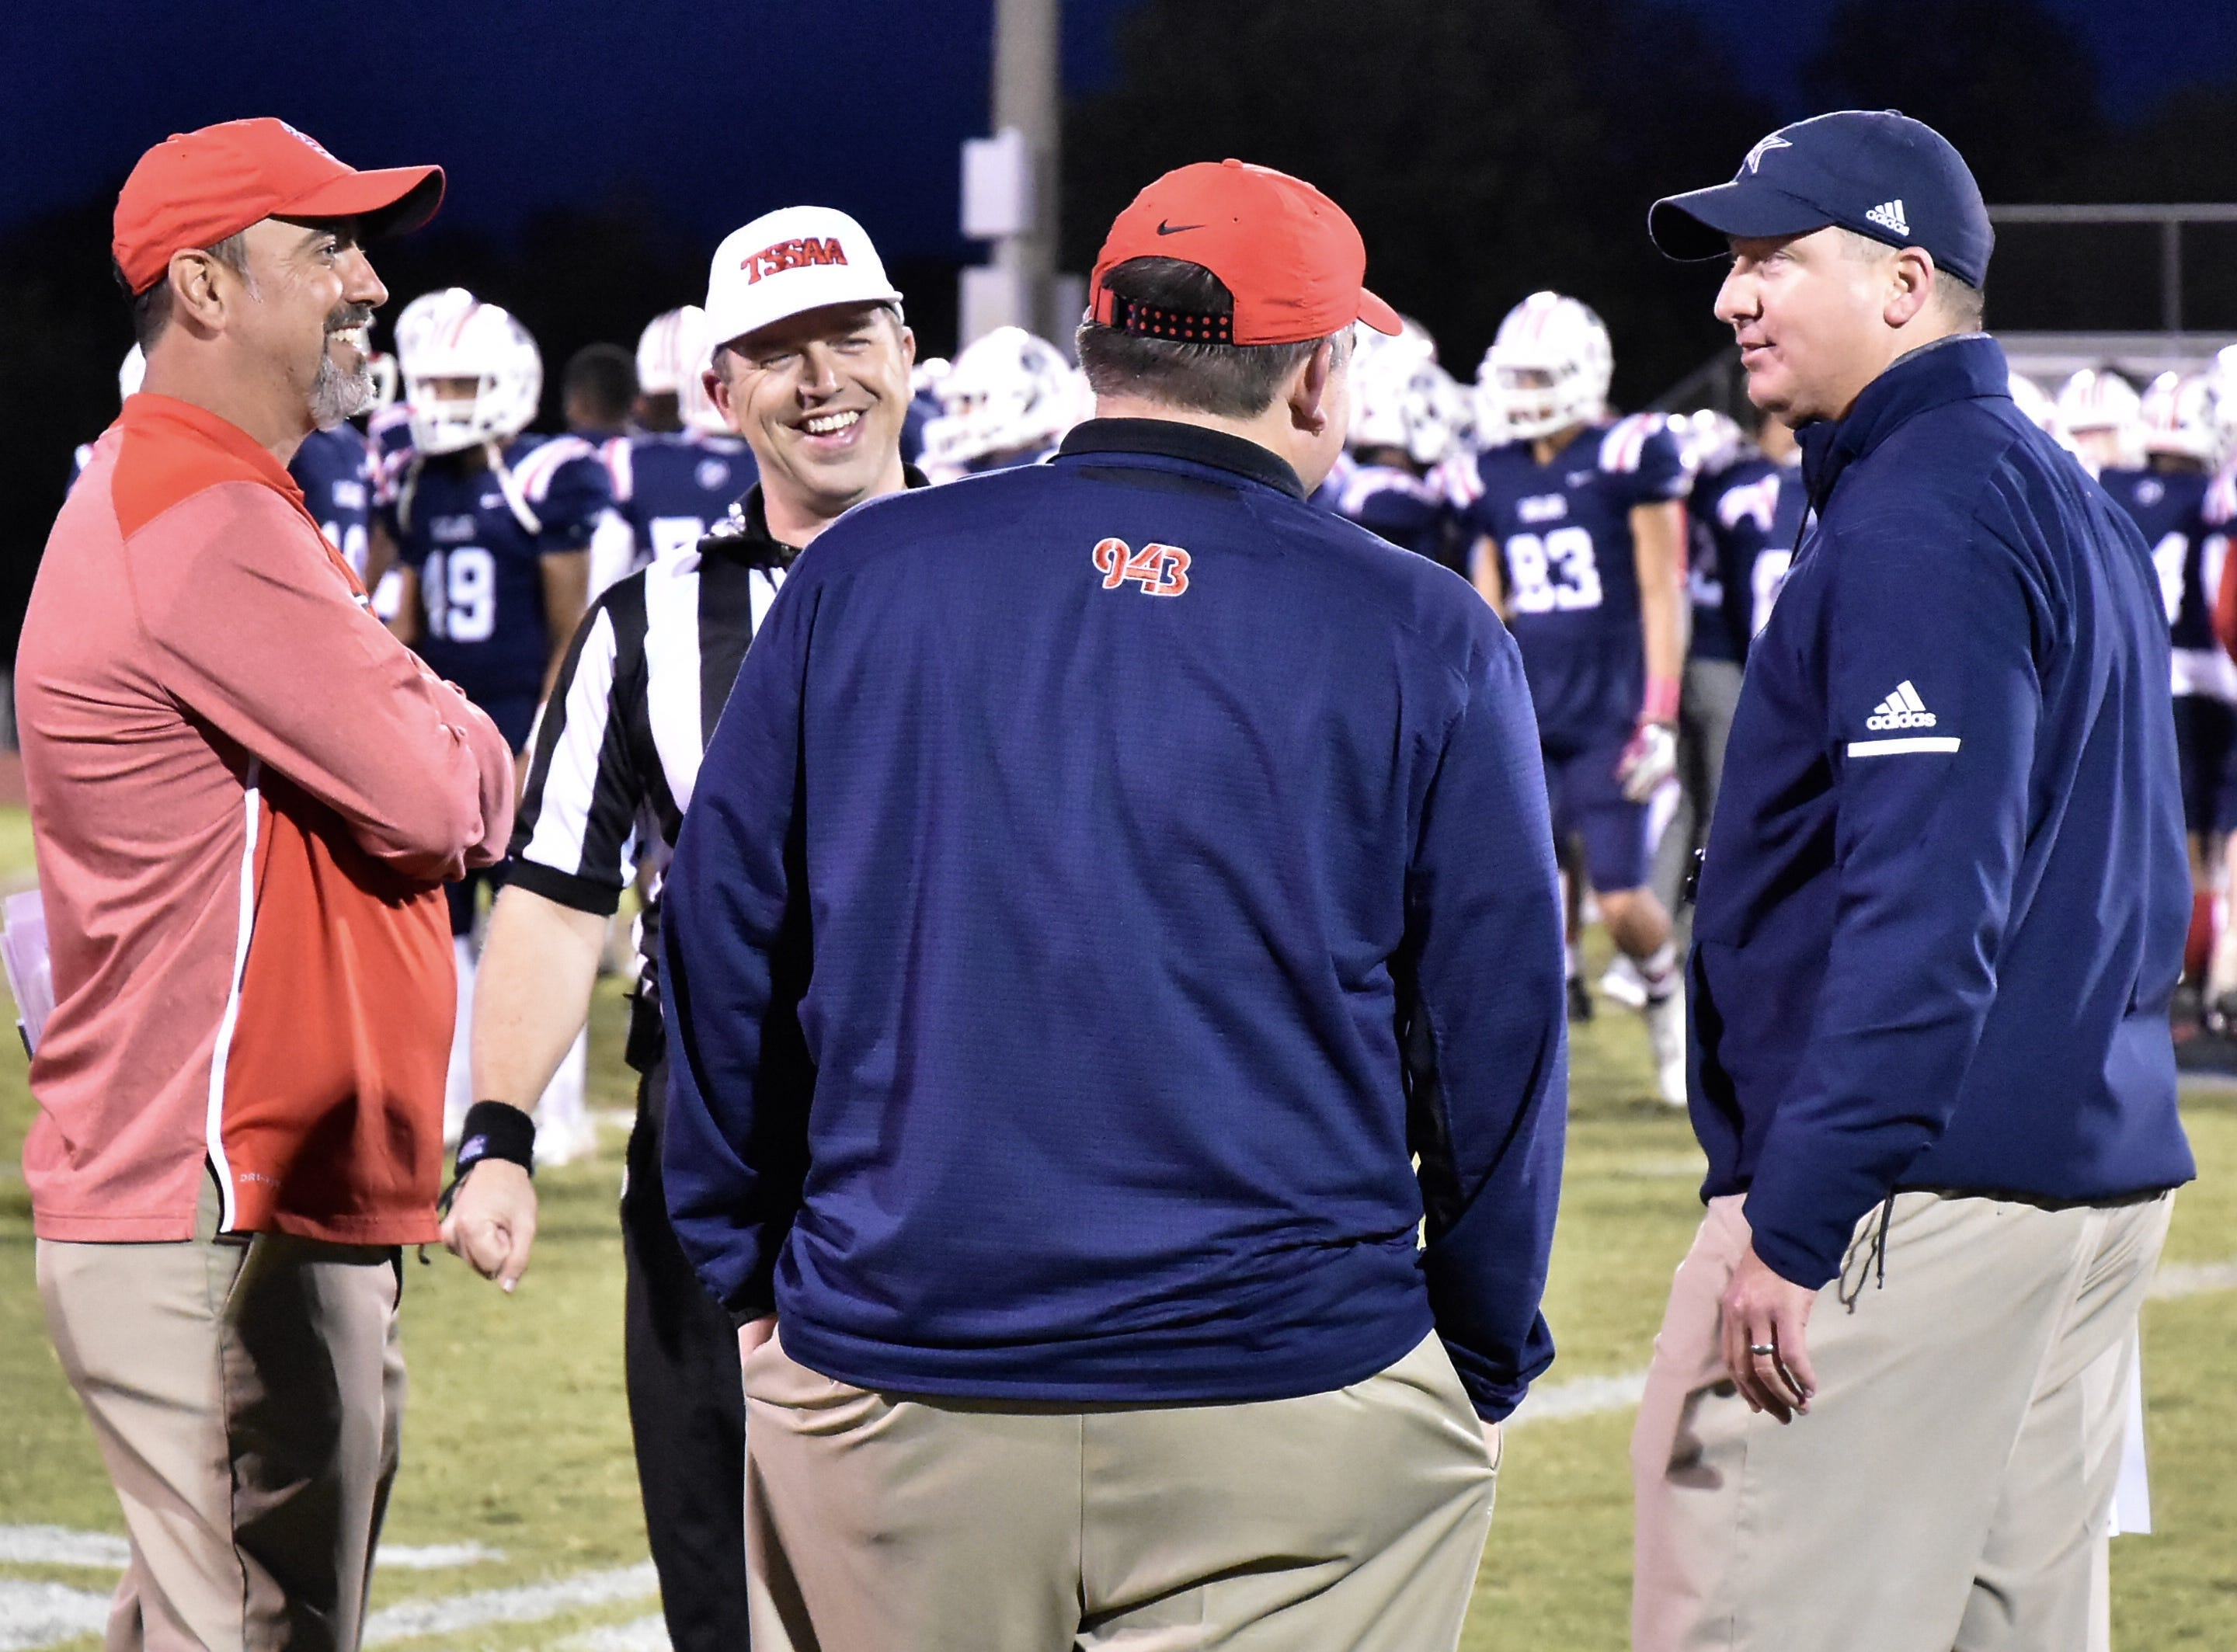 Oakland head coach Kevin Creasy and Siegel head coach Michael Copley talk with an official before the start of their game Friday night.